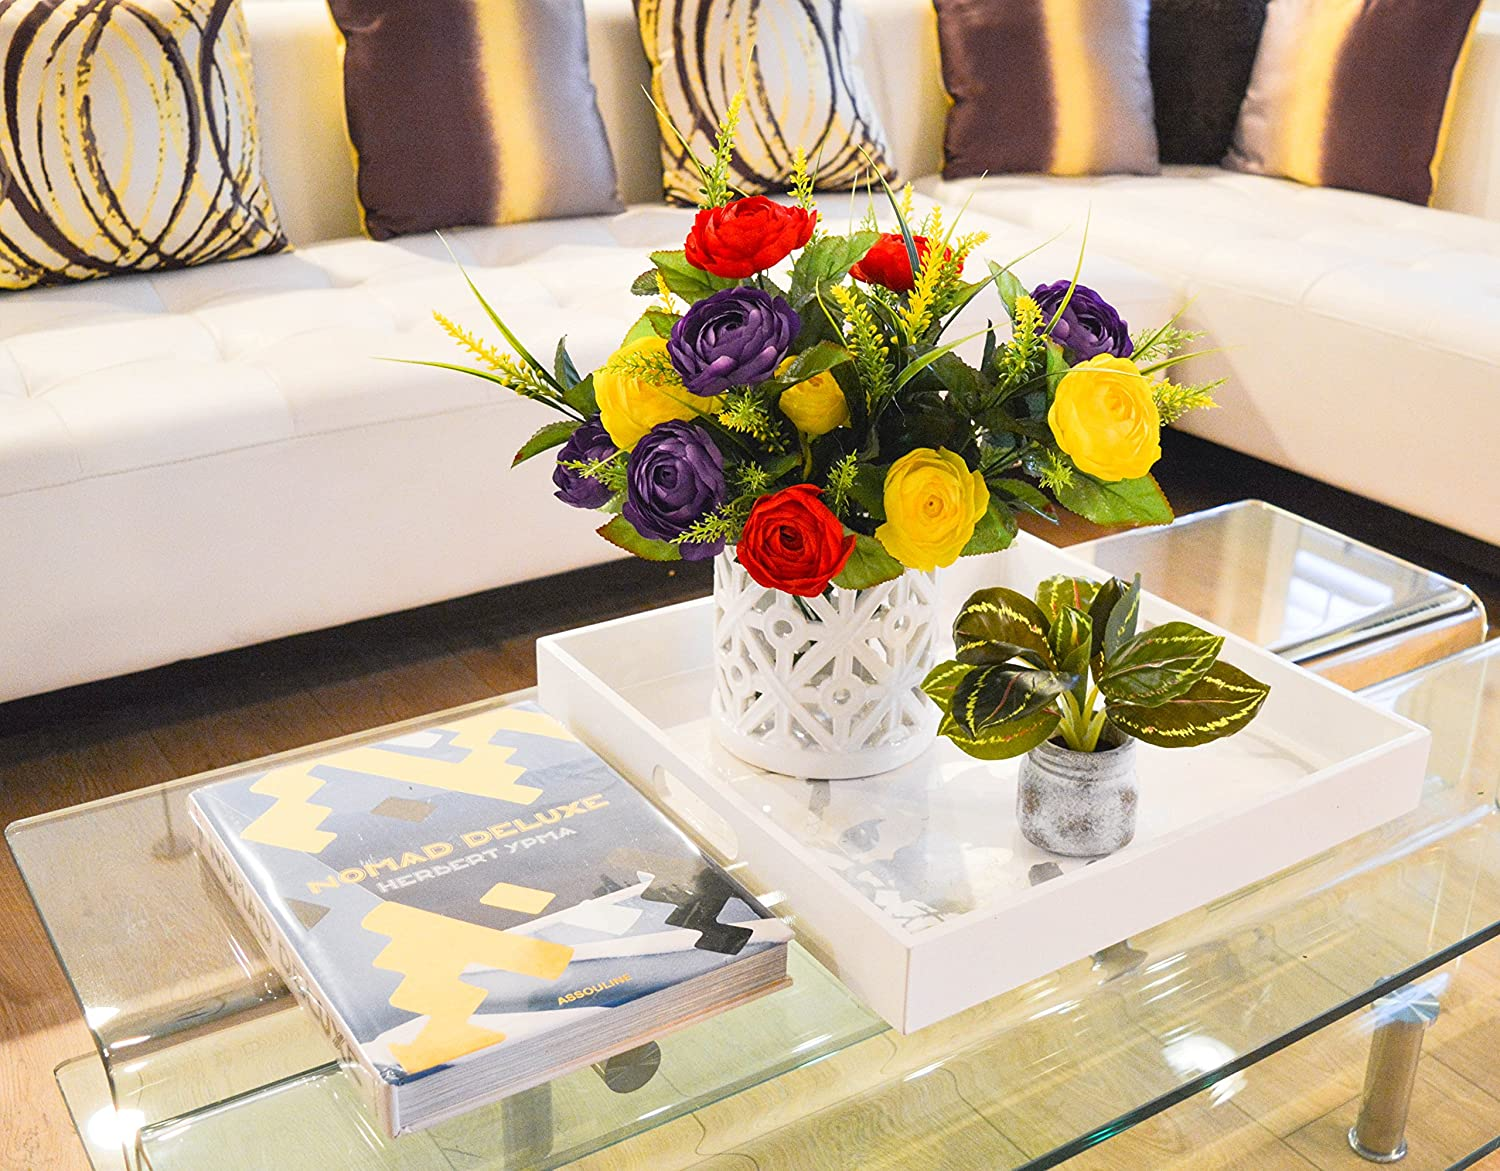 Restaurant Admired By Nature 22 Stems Artificial Ranunculus /& Fillers Mixed Flowers Bush for Home office Wedding Decoration Red//Yellow//Purple